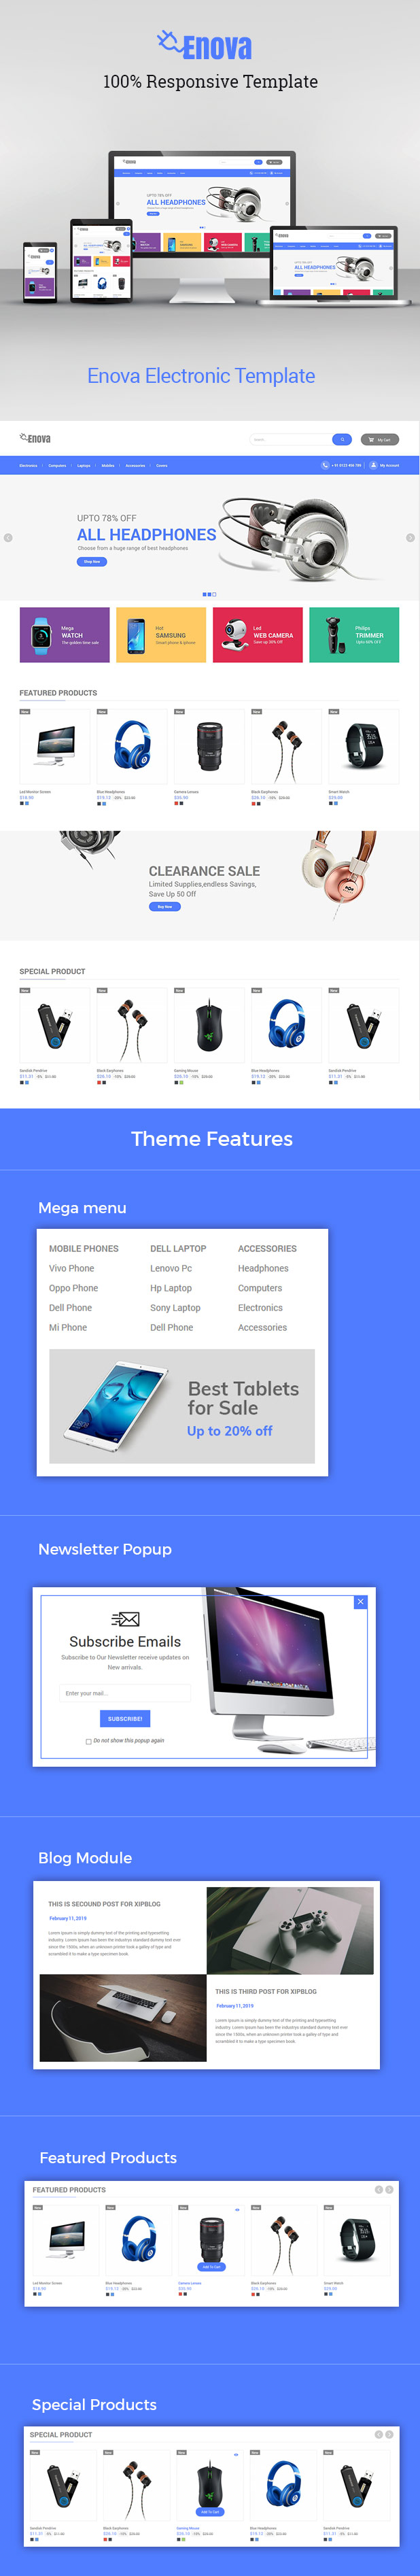 Enova - Electronics Mobile Digital Prestahsop 1.7 Theme - 1